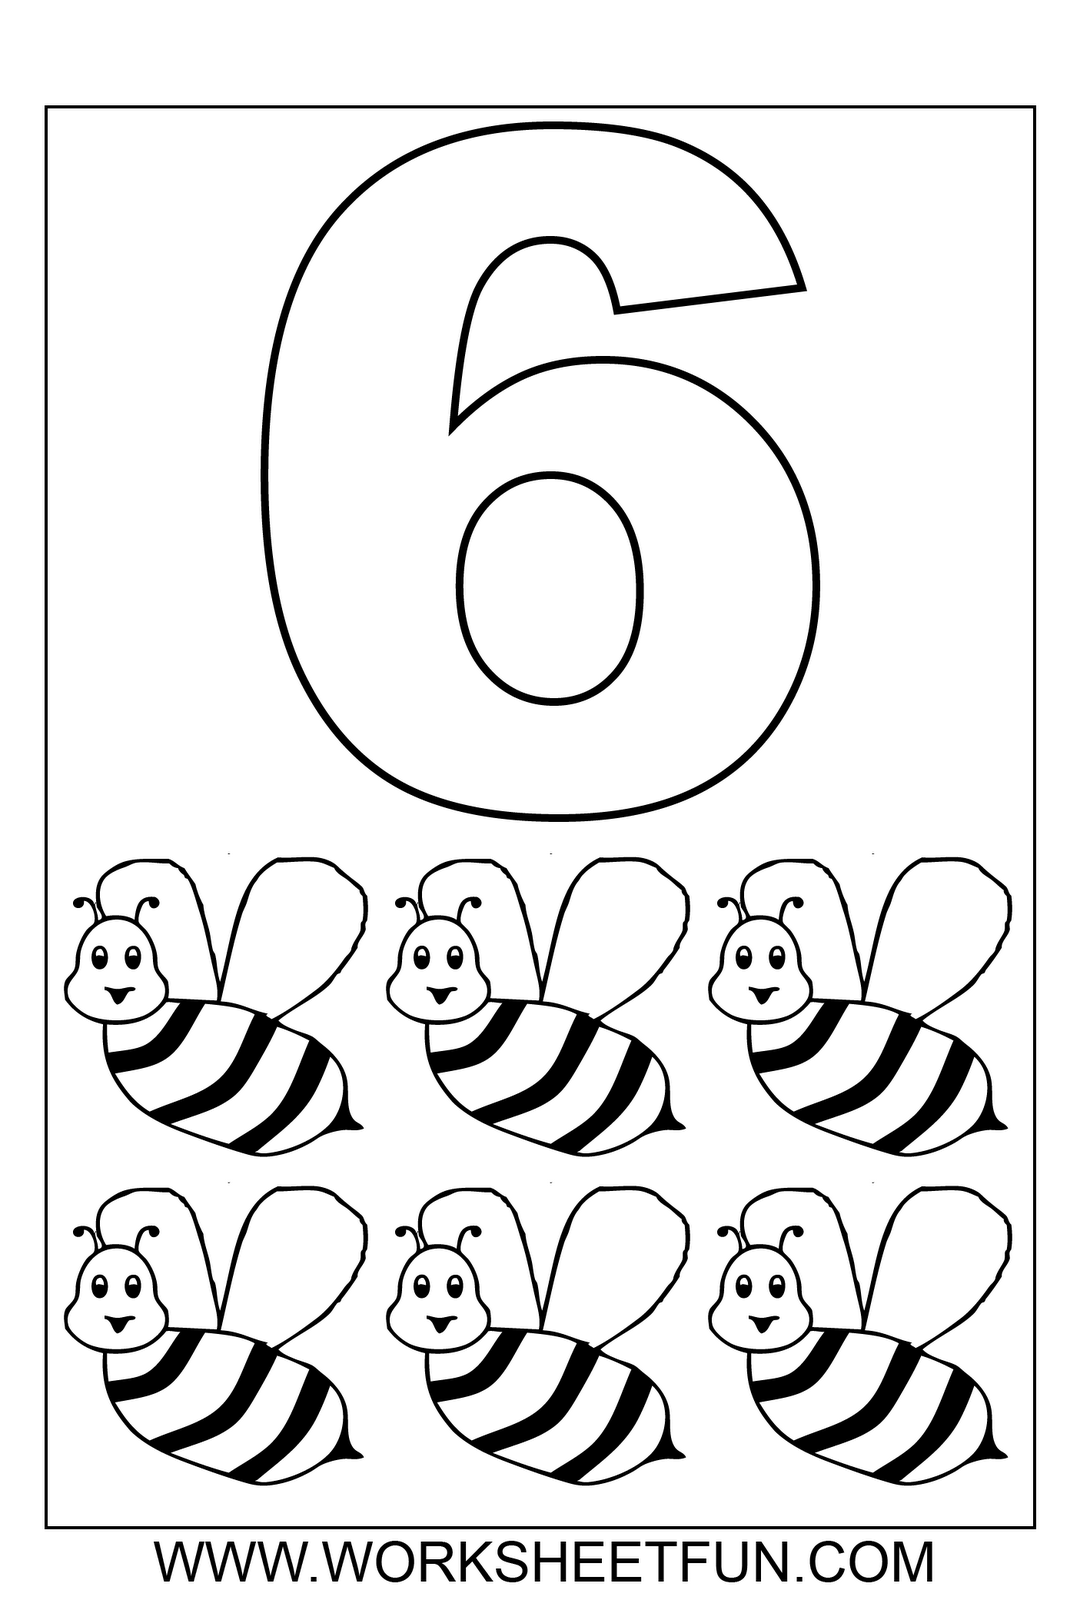 Numbers Colouring Sheets 06